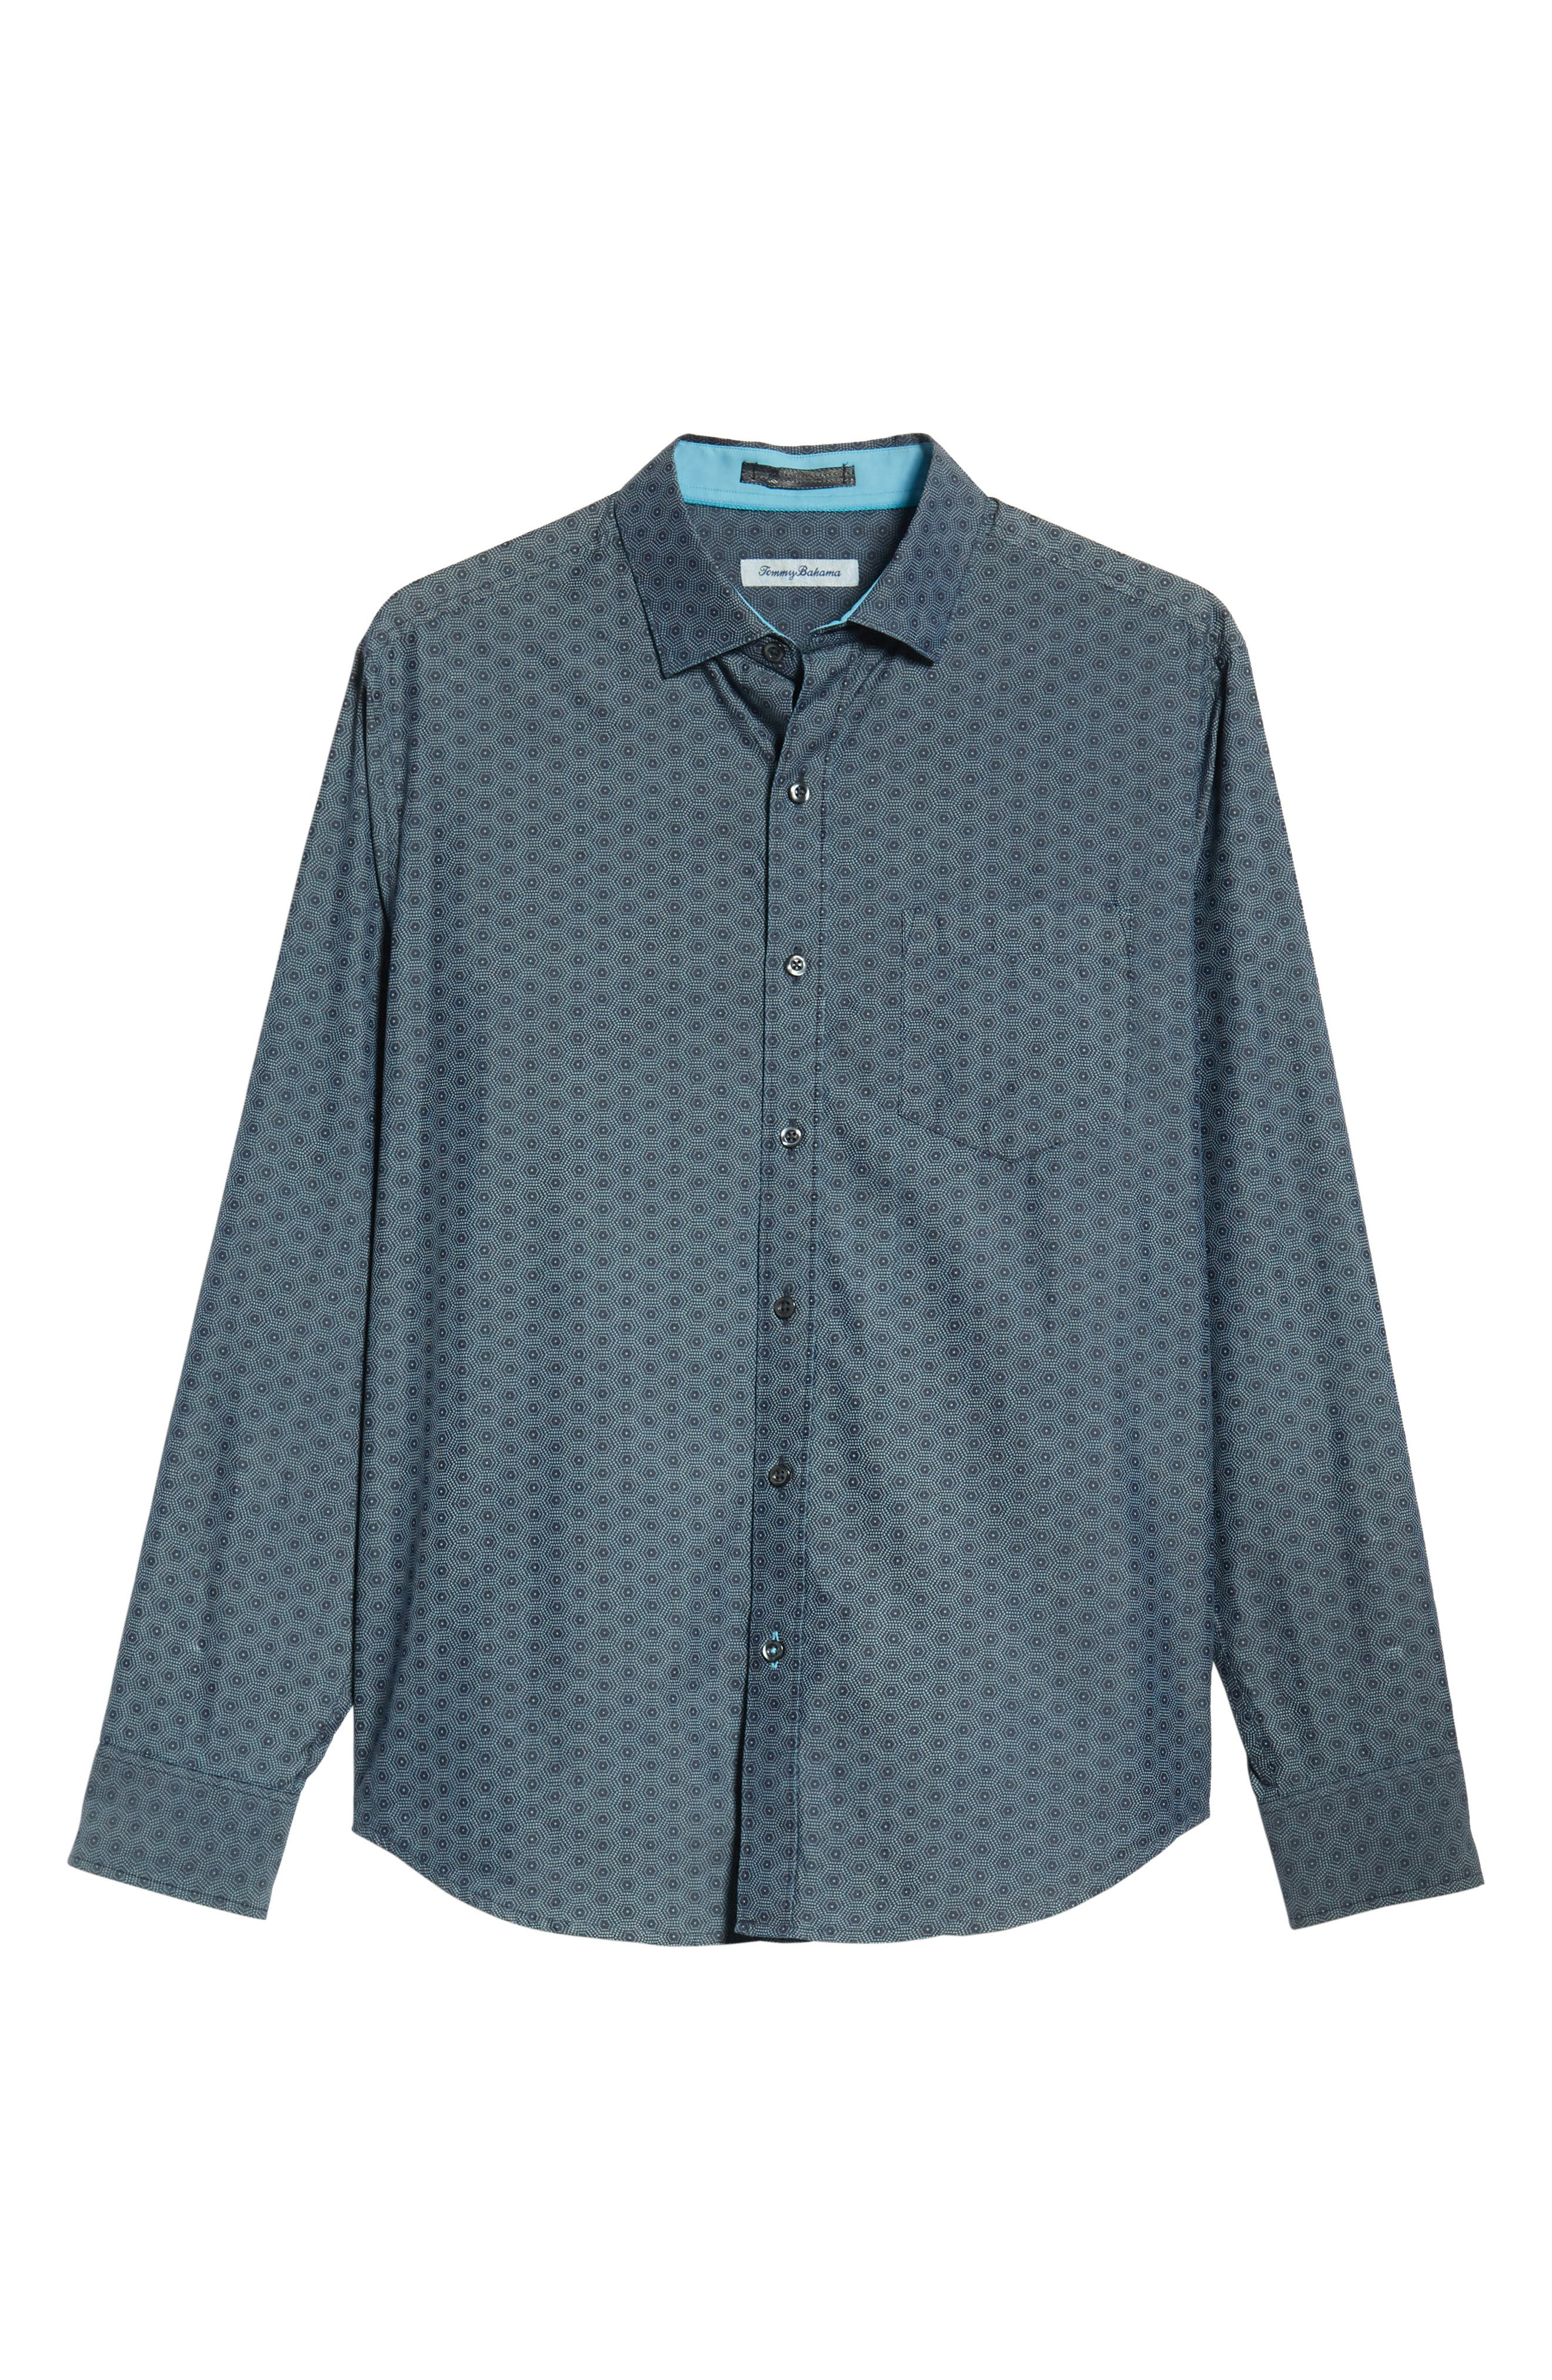 Rio del Geo Sport Shirt,                             Alternate thumbnail 6, color,                             OCEAN DEEP